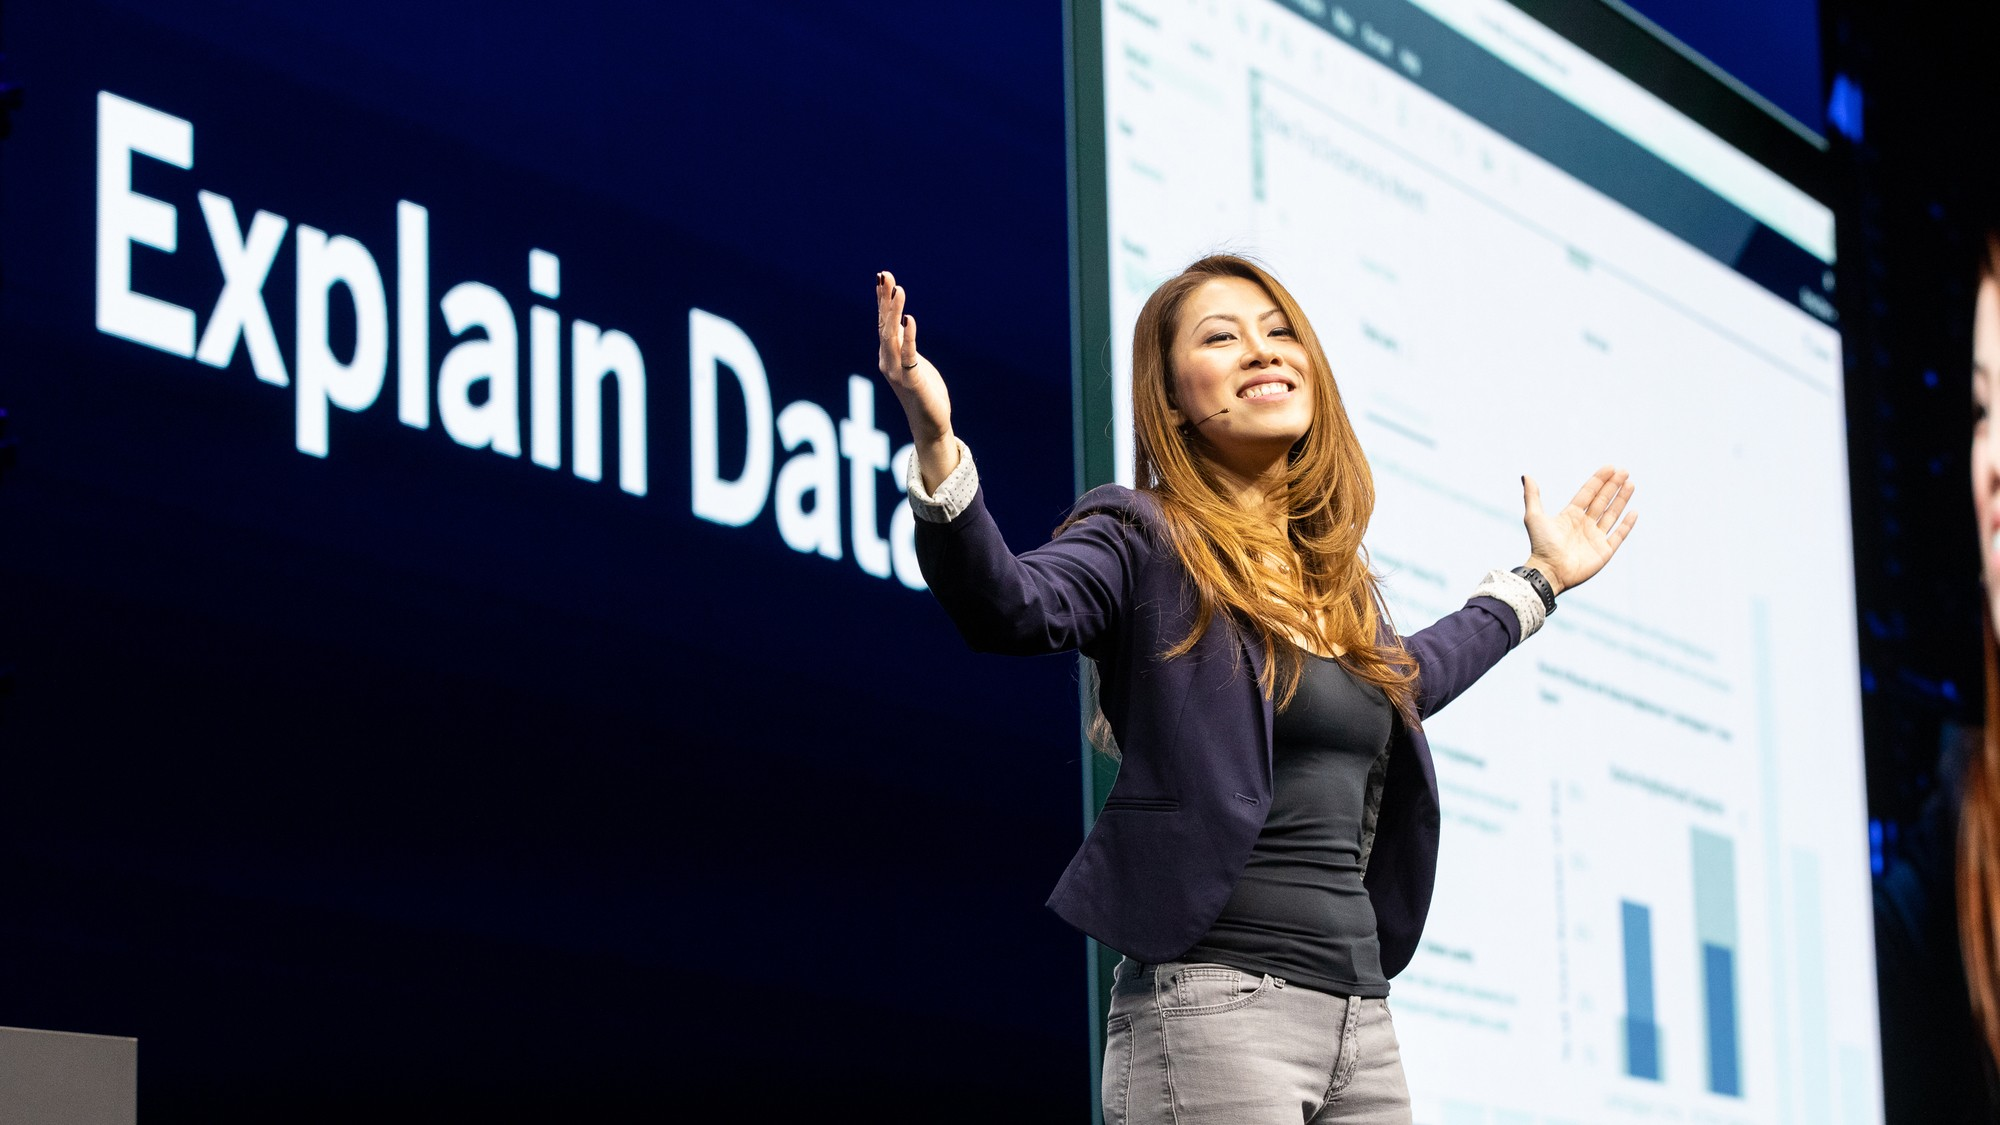 Dev manager Samantha demos Explain Data and Ask Data from Tableau on stage at TC19